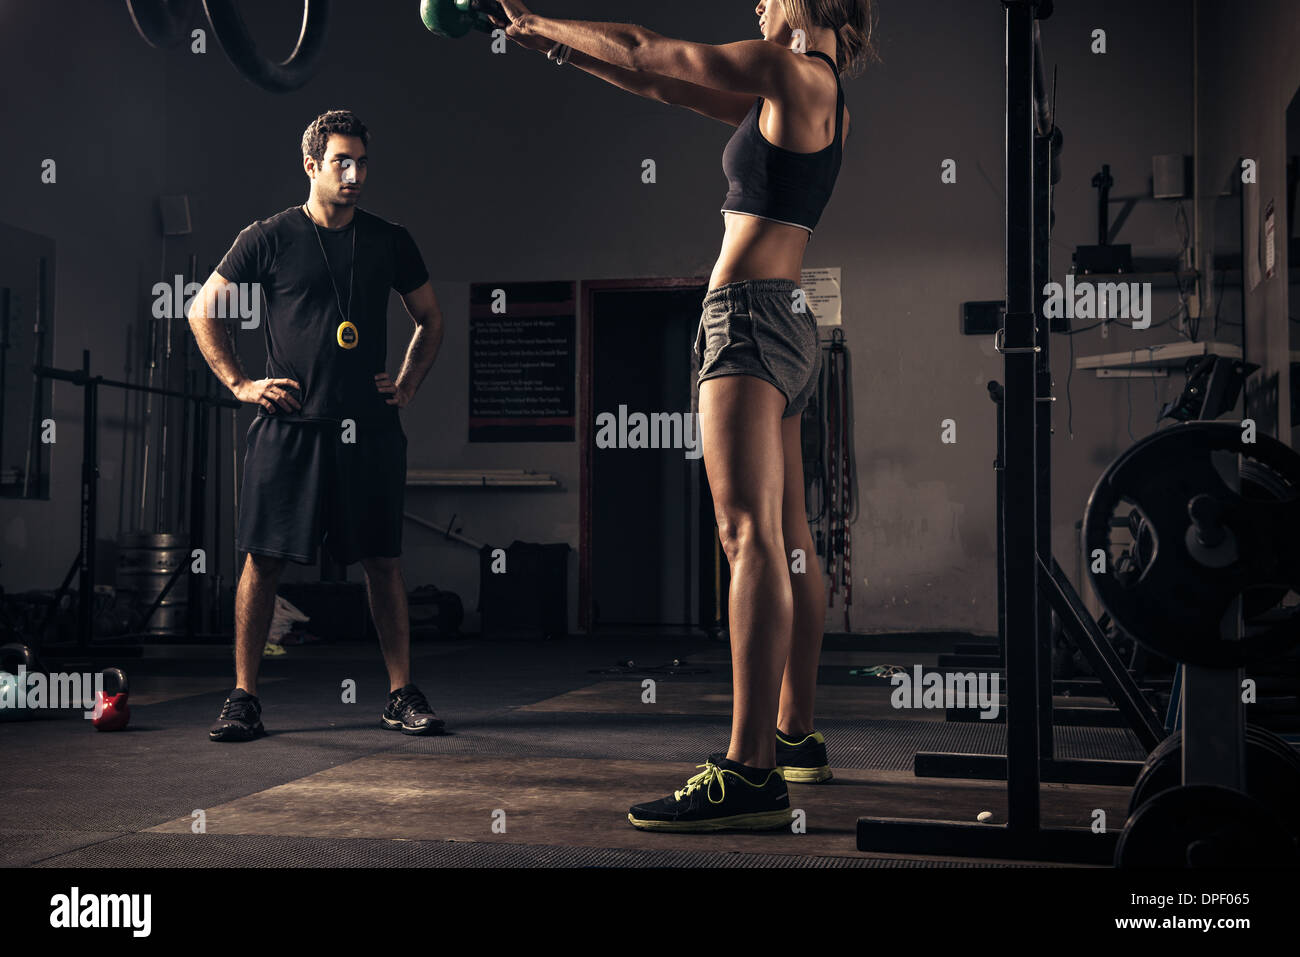 Female weight-lifter being watched by trainer - Stock Image